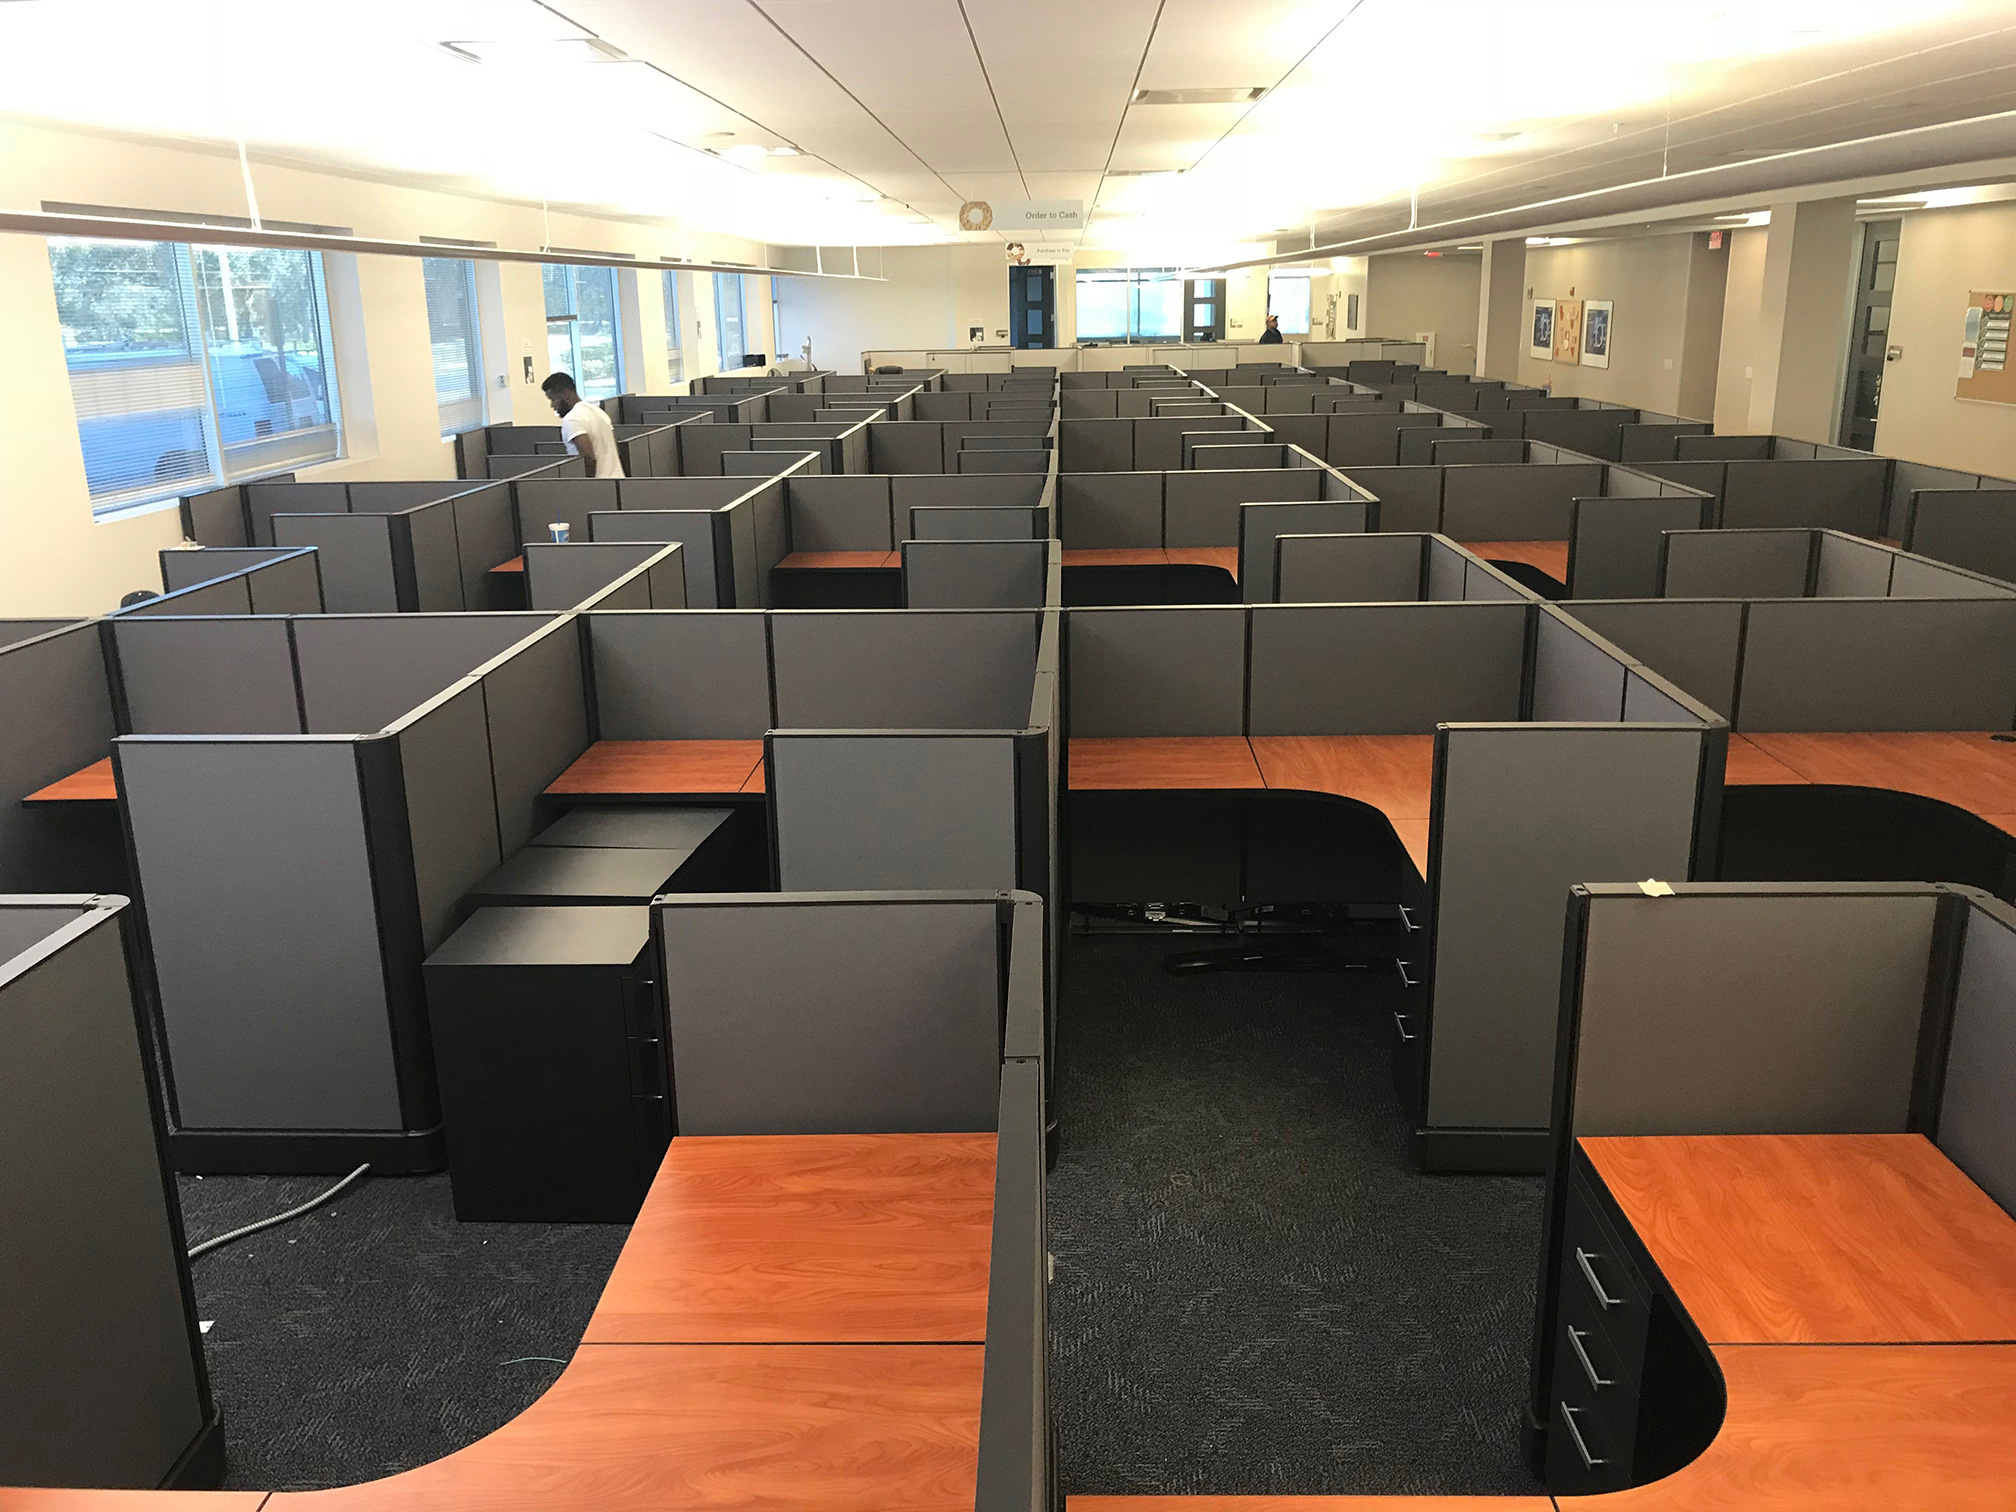 office-cubicles-for-sale-in-west-melbourne-florida-3.jpg